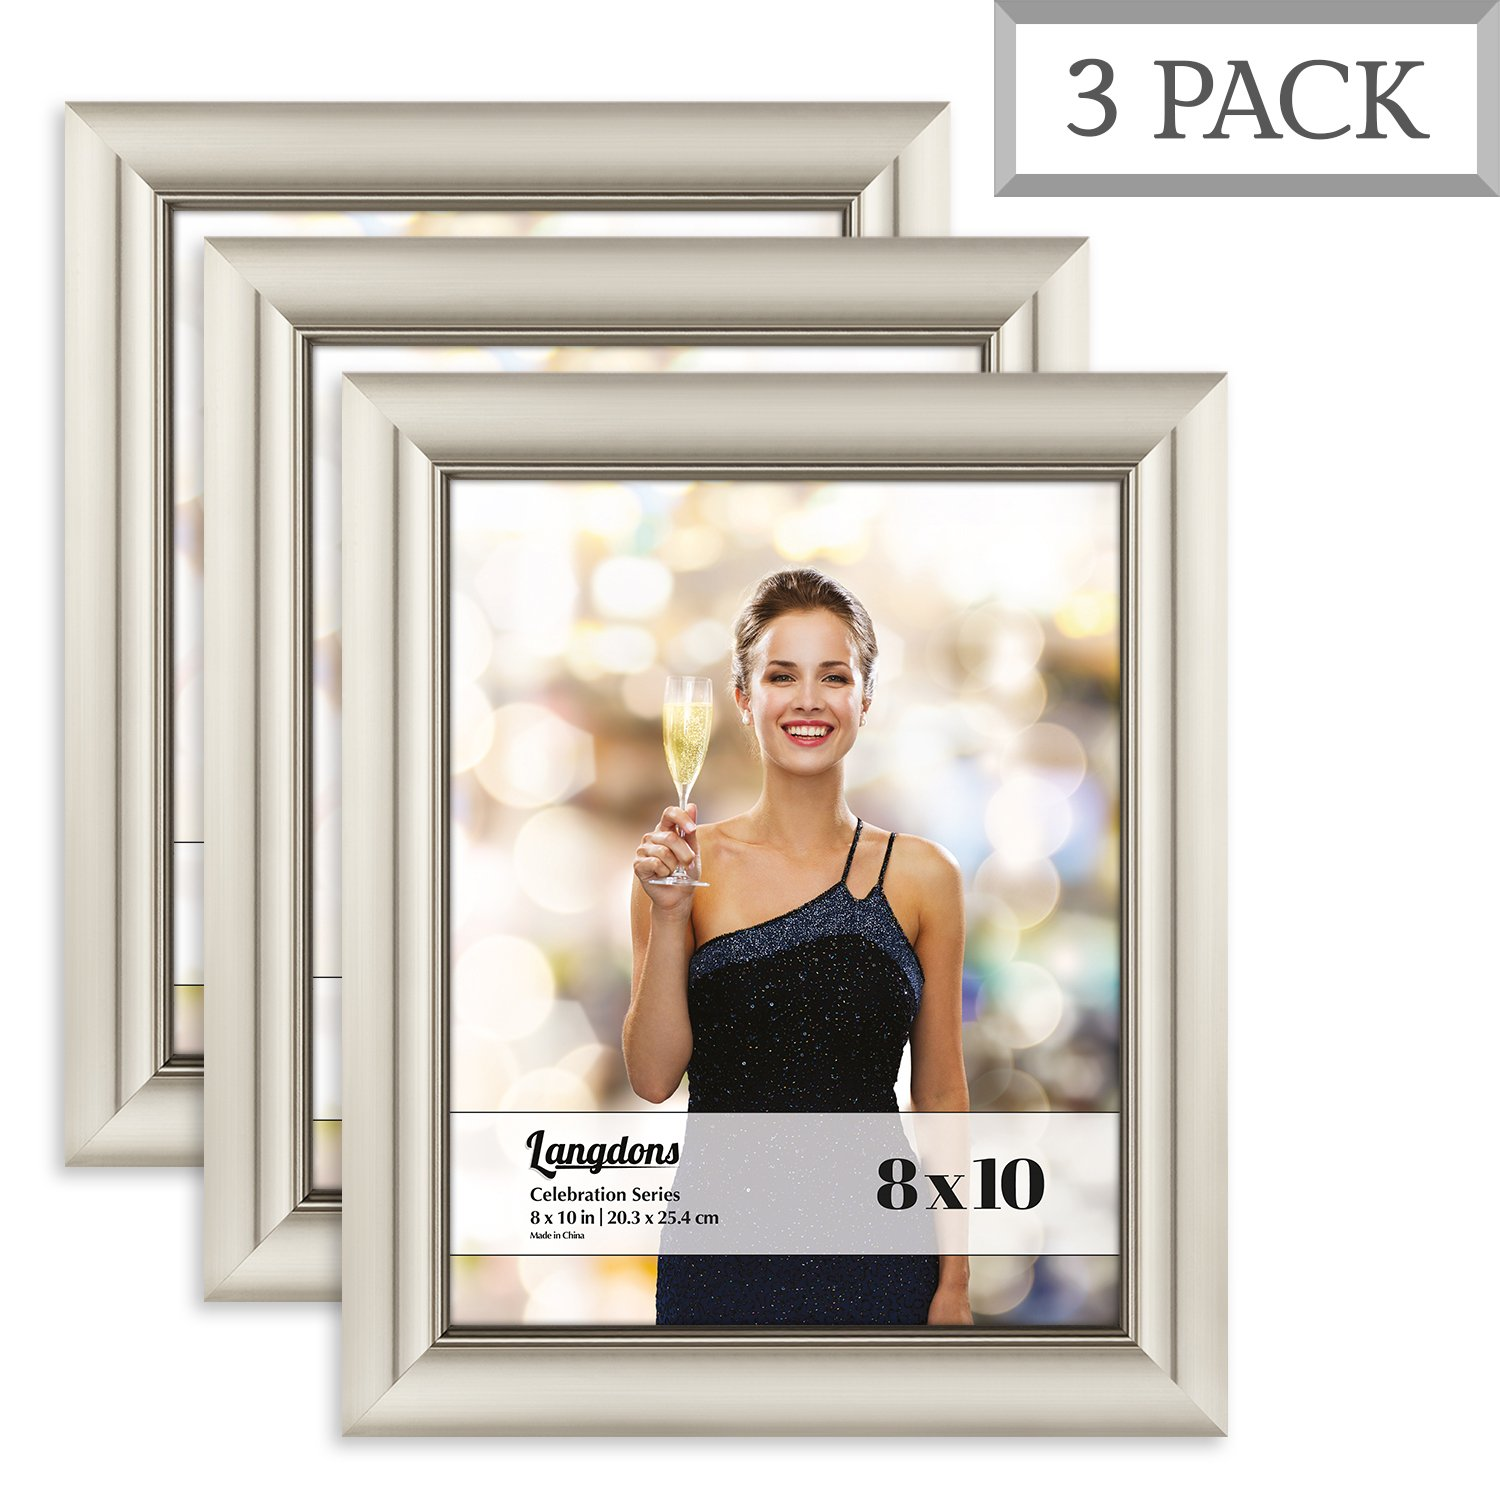 Langdons 8x10 Picture Frame Set (3 Pack, Champagne Picture Frame) Photo Frame 8x10, Wall Hang or Table Top Display, 8 x 10 Frame - Champagne Gold Picture Frame, Celebration Series